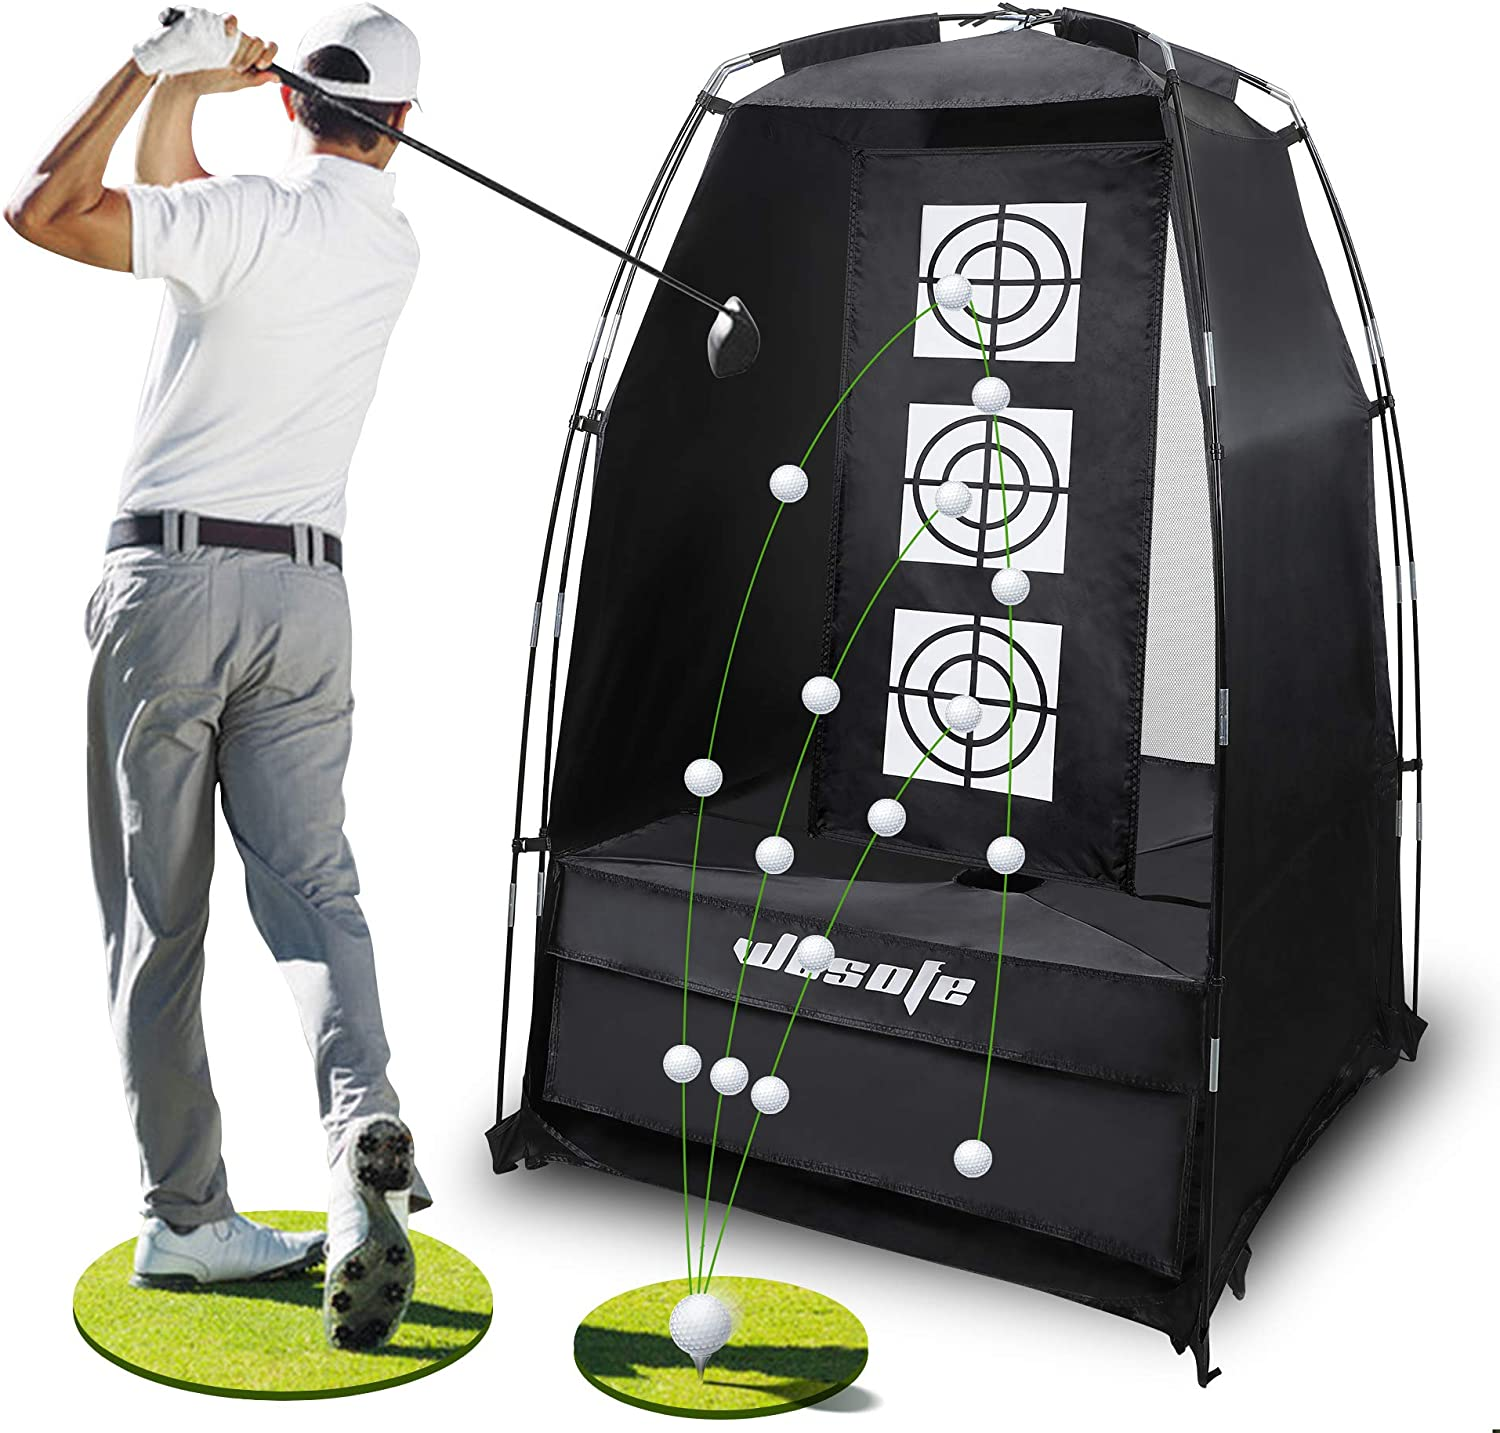 wosofe Golf Practice Driving Hitting Net 3.8 x 6.5Ft Chipping Professional 2 Target Backyard Indoor Home and Outdoor Use